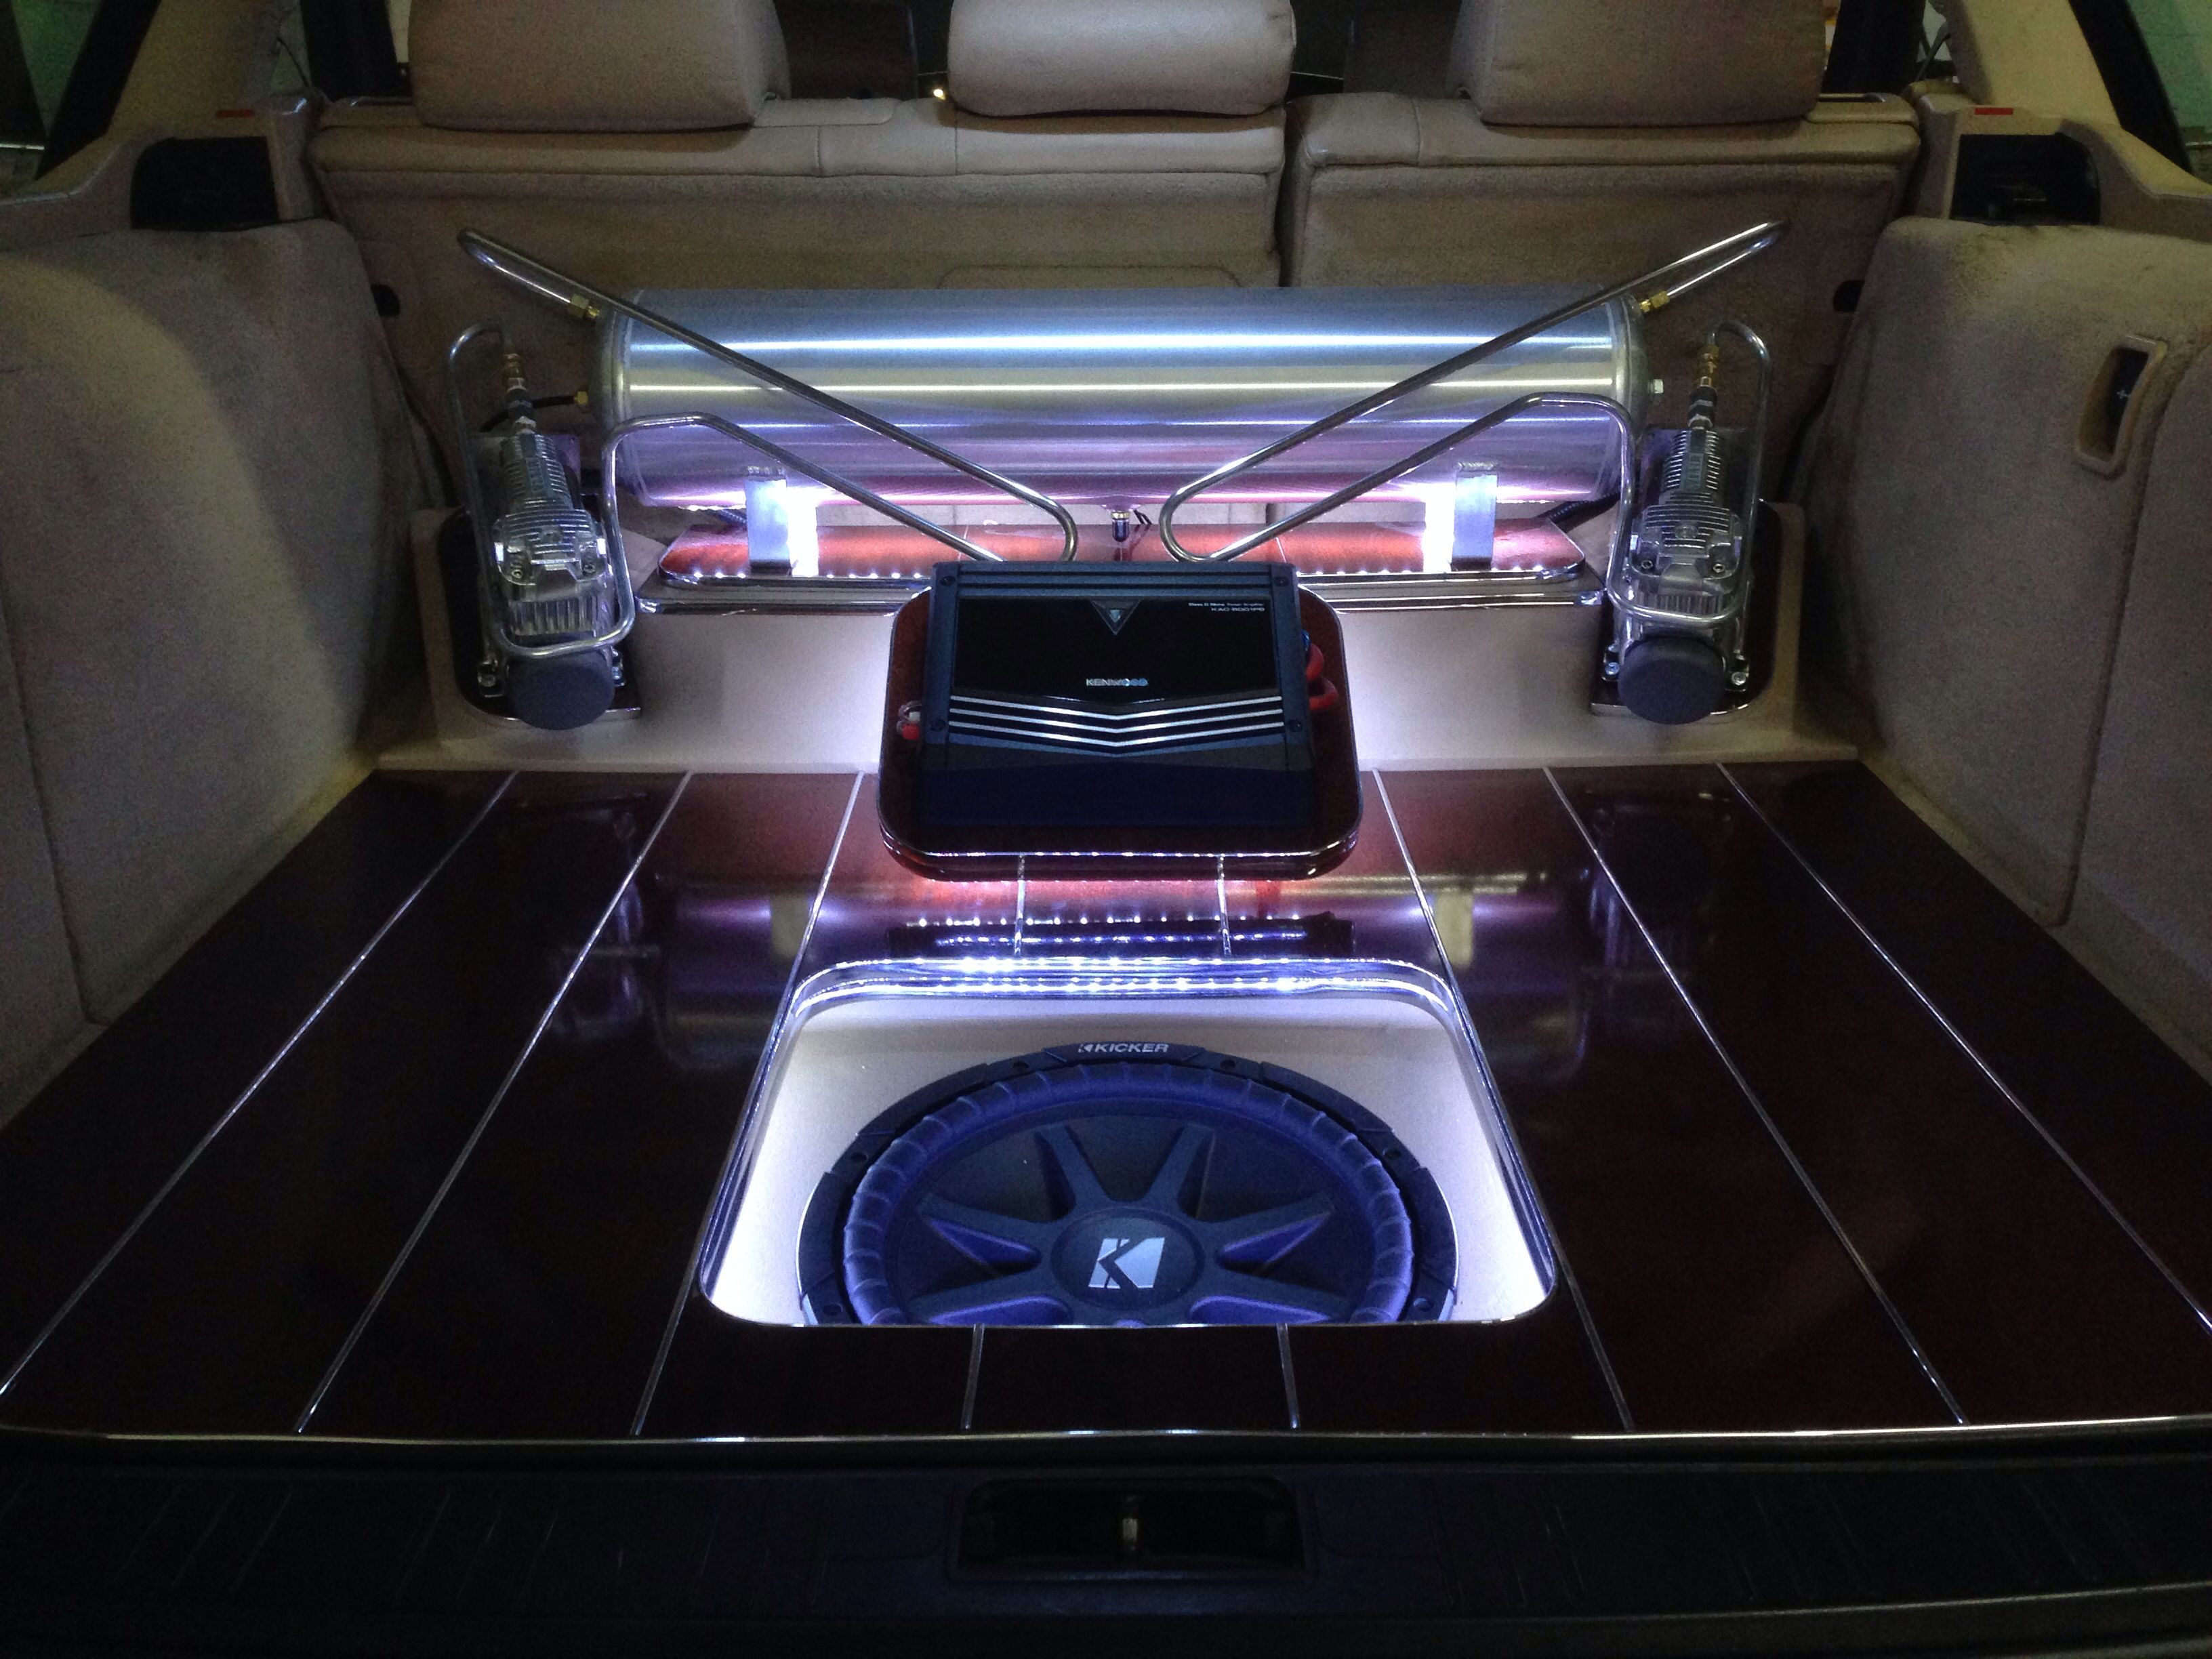 Custom airride setup with custom wood flooring and sound